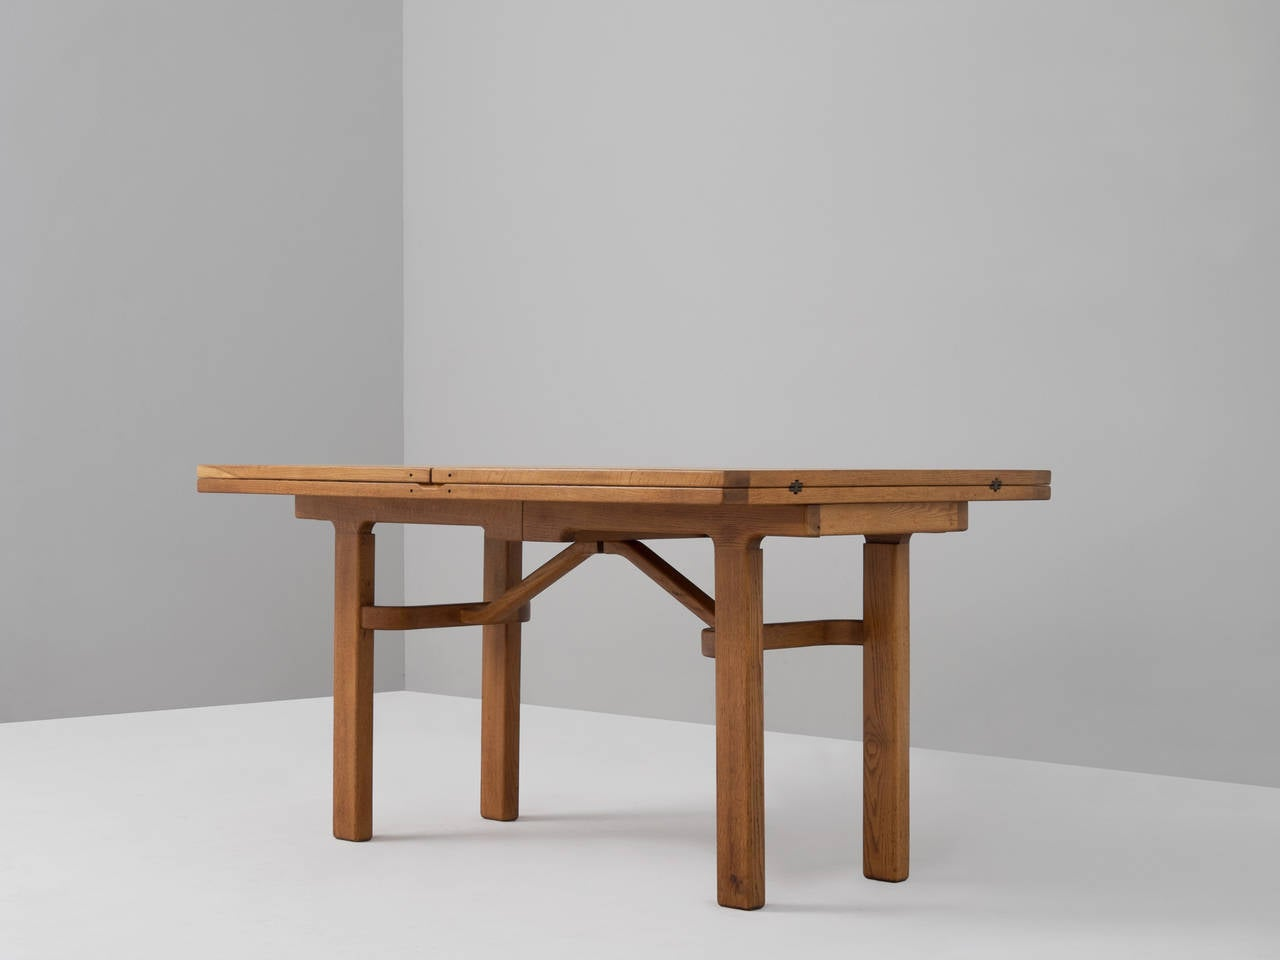 Guillerme et chambron dining table for sale at 1stdibs for G plan heritage dining room furniture